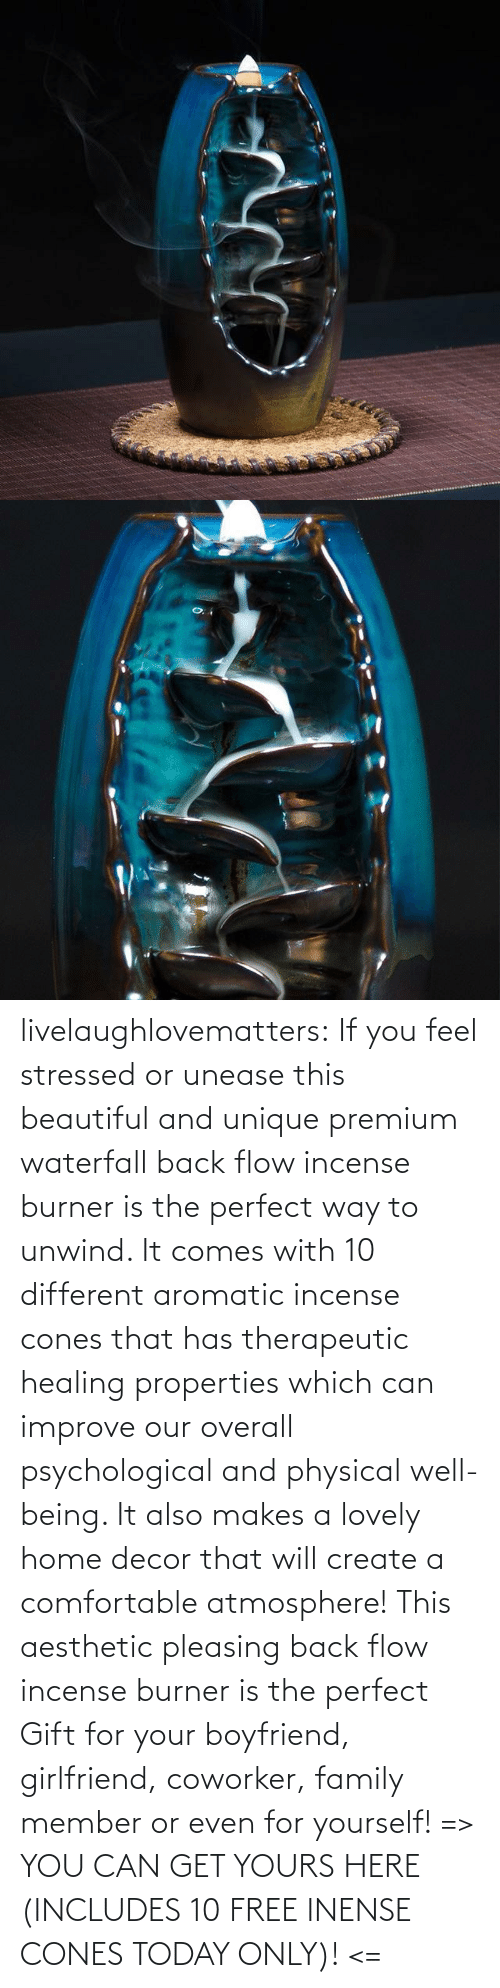 Aesthetic: livelaughlovematters: If you feel stressed or unease this beautiful and unique premium waterfall back flow incense burner is the perfect way to unwind. It comes with 10 different aromatic incense cones that has therapeutic healing properties which can improve our overall psychological and physical well-being. It also makes a lovely home decor that will create a comfortable atmosphere! This aesthetic pleasing back flow incense burner is the perfect Gift for your boyfriend, girlfriend, coworker, family member or even for yourself! => YOU CAN GET YOURS HERE (INCLUDES 10 FREE INENSE CONES TODAY ONLY)! <=